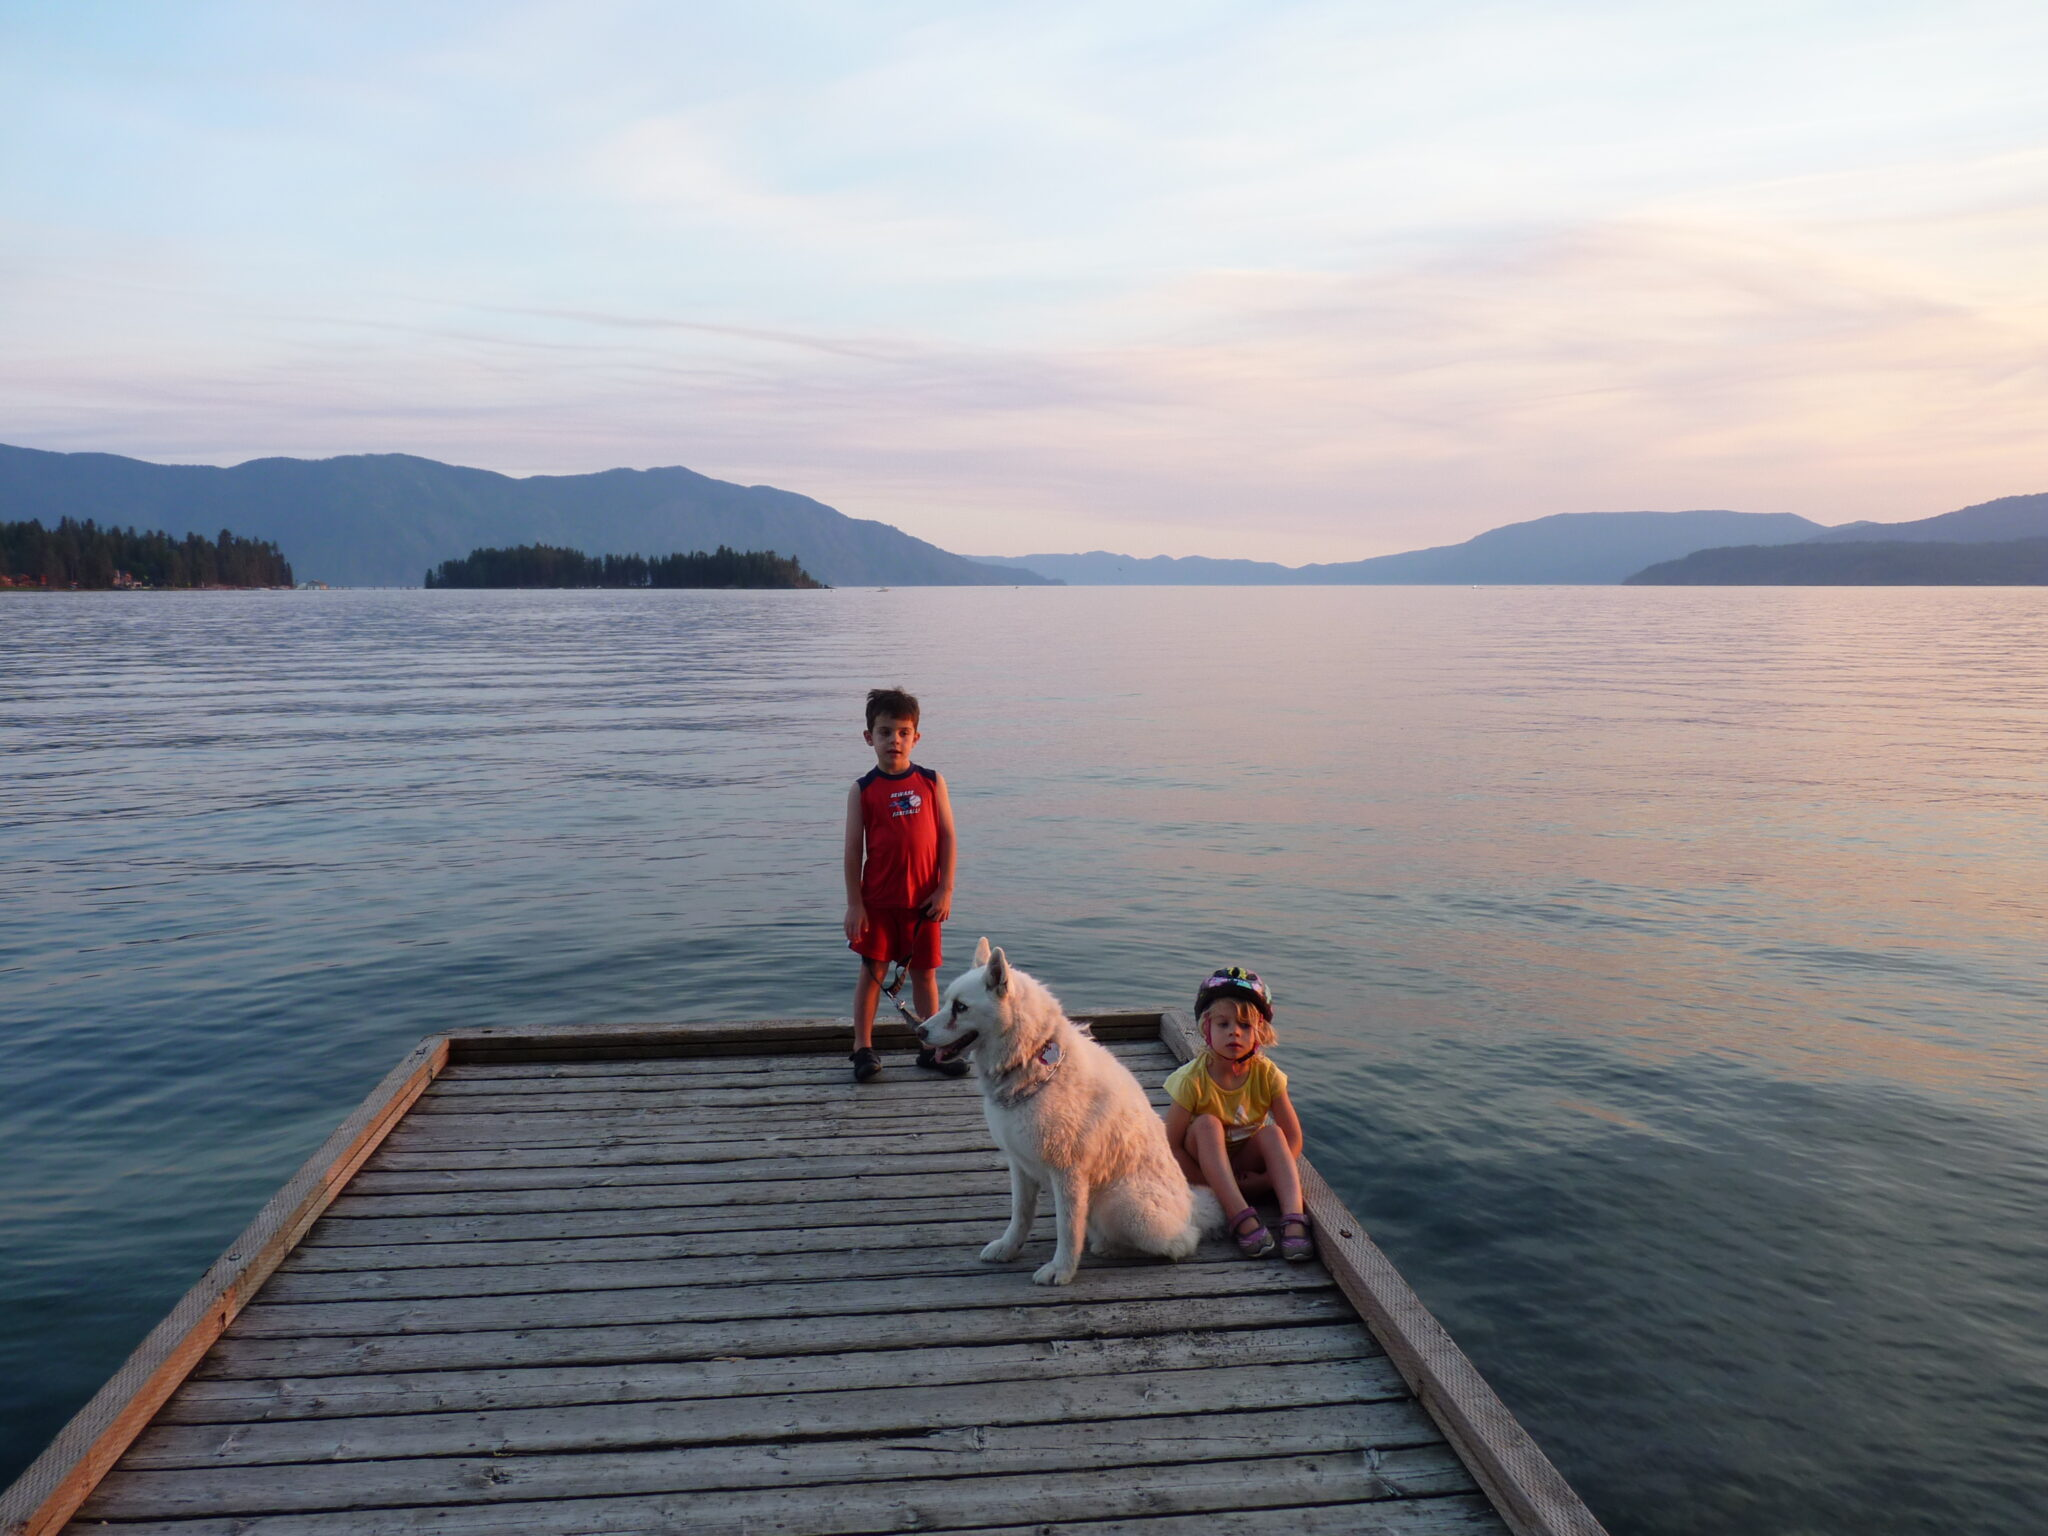 Two young children with their dock standing on a dock at sunset at Lake Pend Oreille, with forested hills in the far distance.